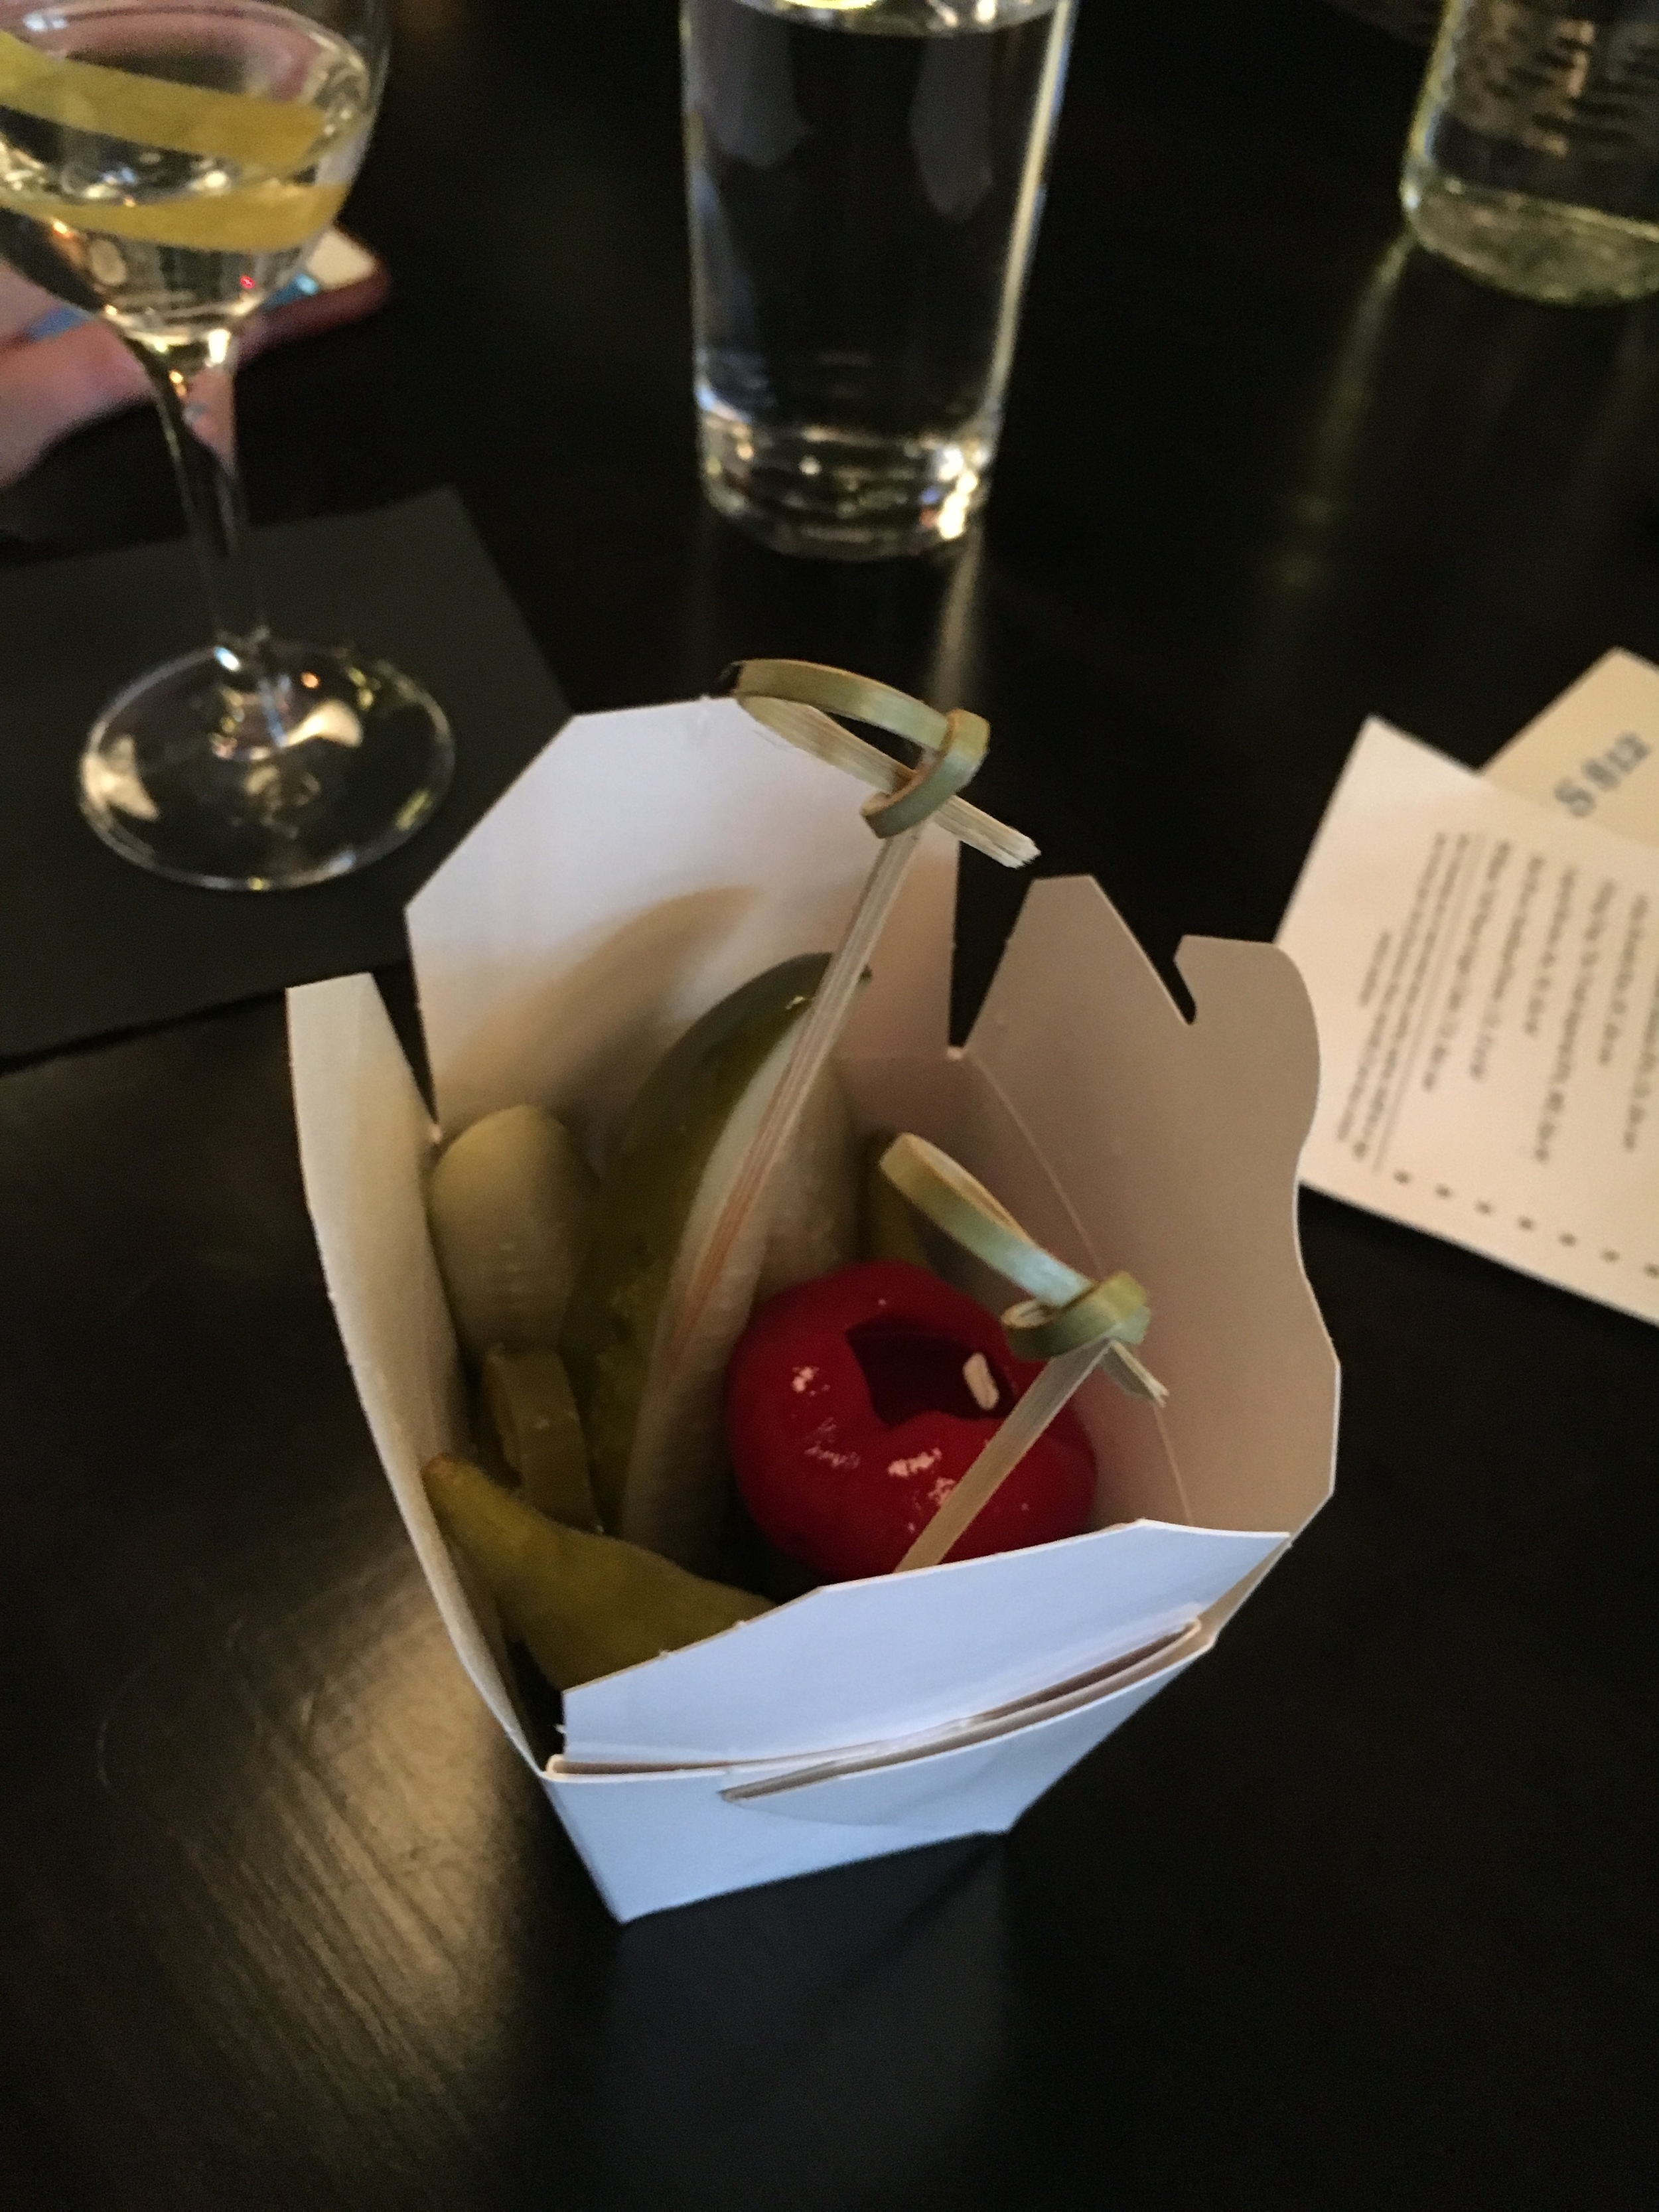 Pickled things.